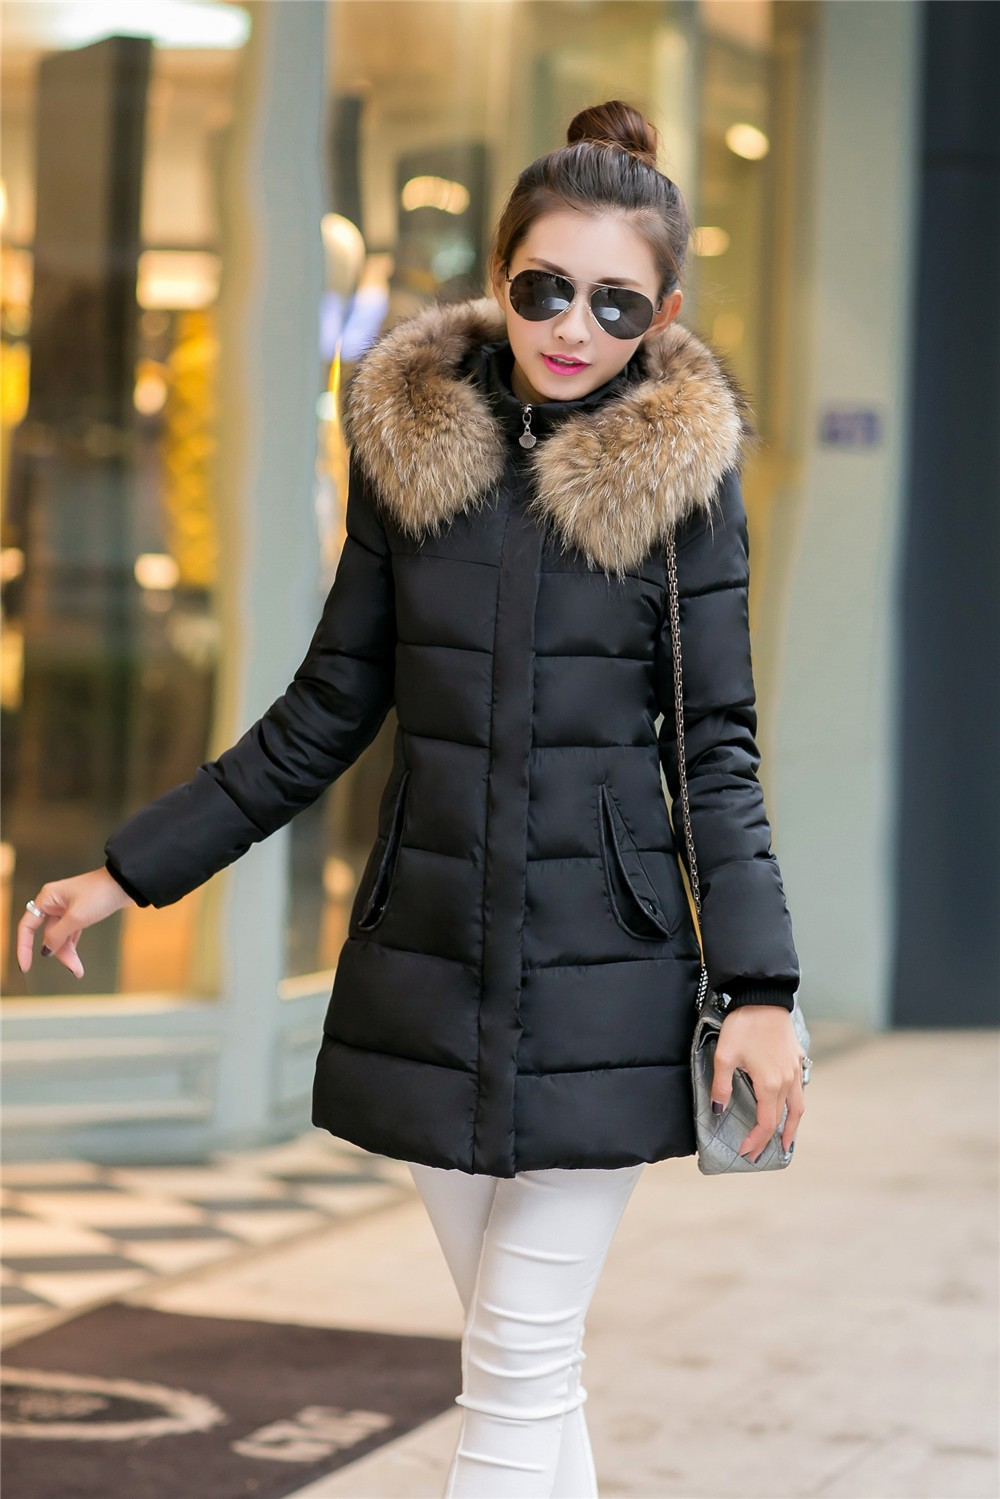 #2619 Winter coat sale for women 2016 Slim Fashion Casaco feminino inverno Womens winter jackets and coats Jaquetas feminina